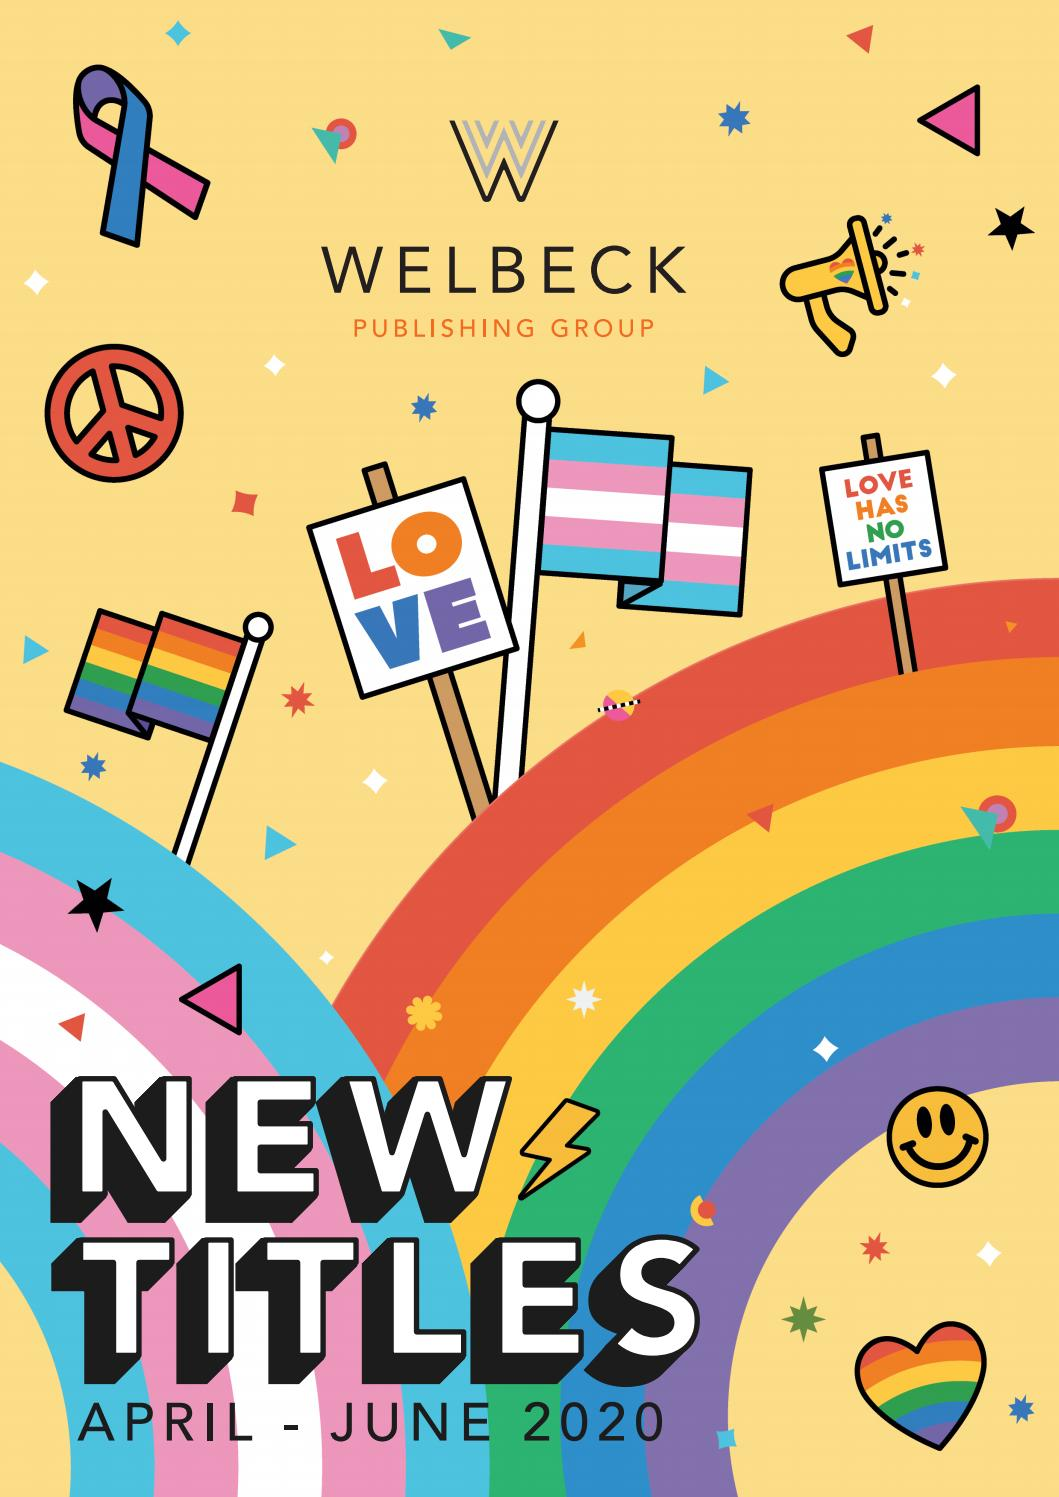 june 2020 by welbeck publishing group